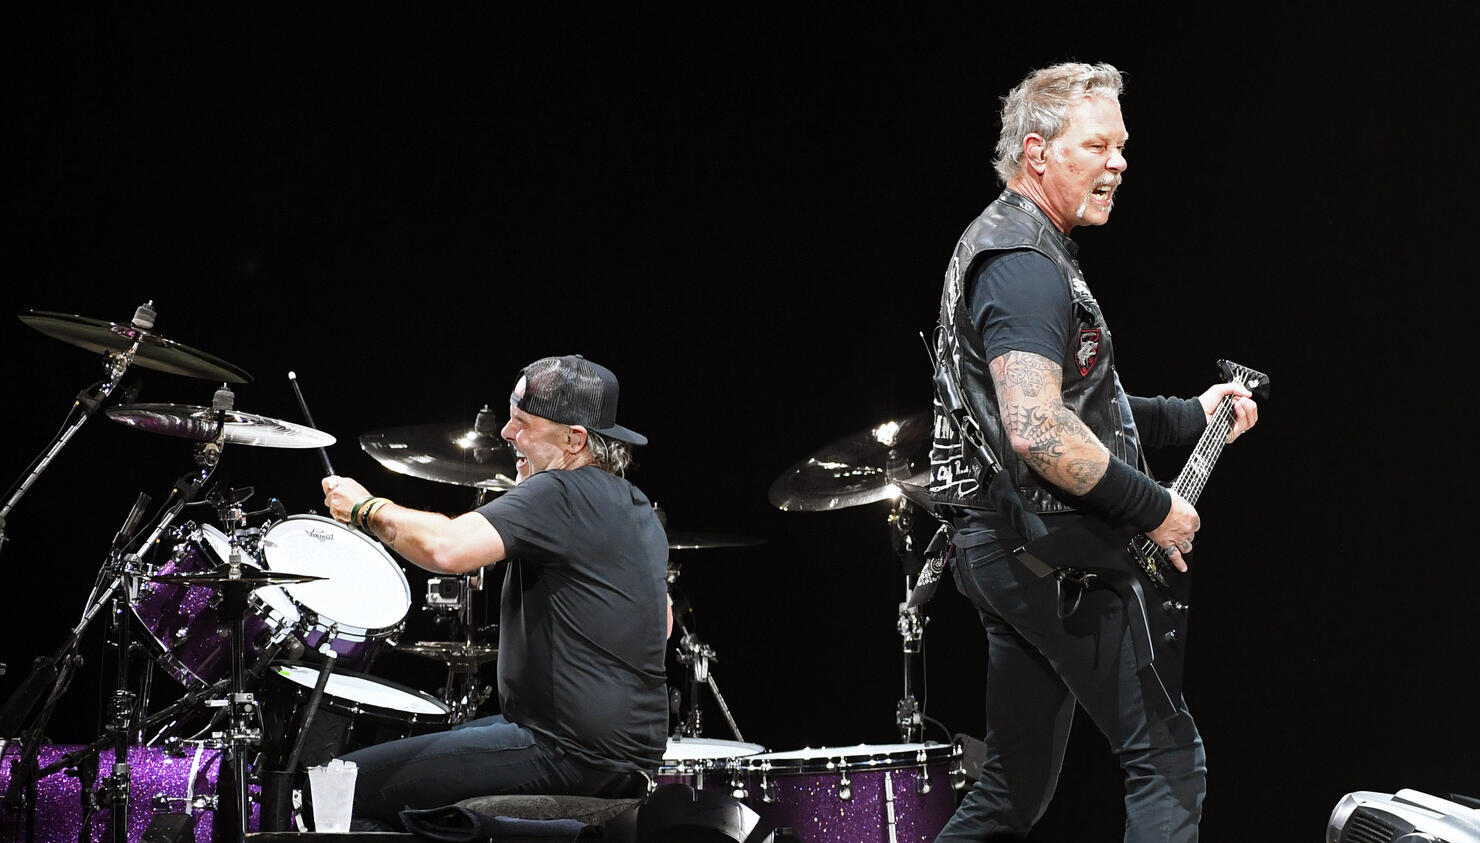 Metallica In Concert - Las Vegas, NV